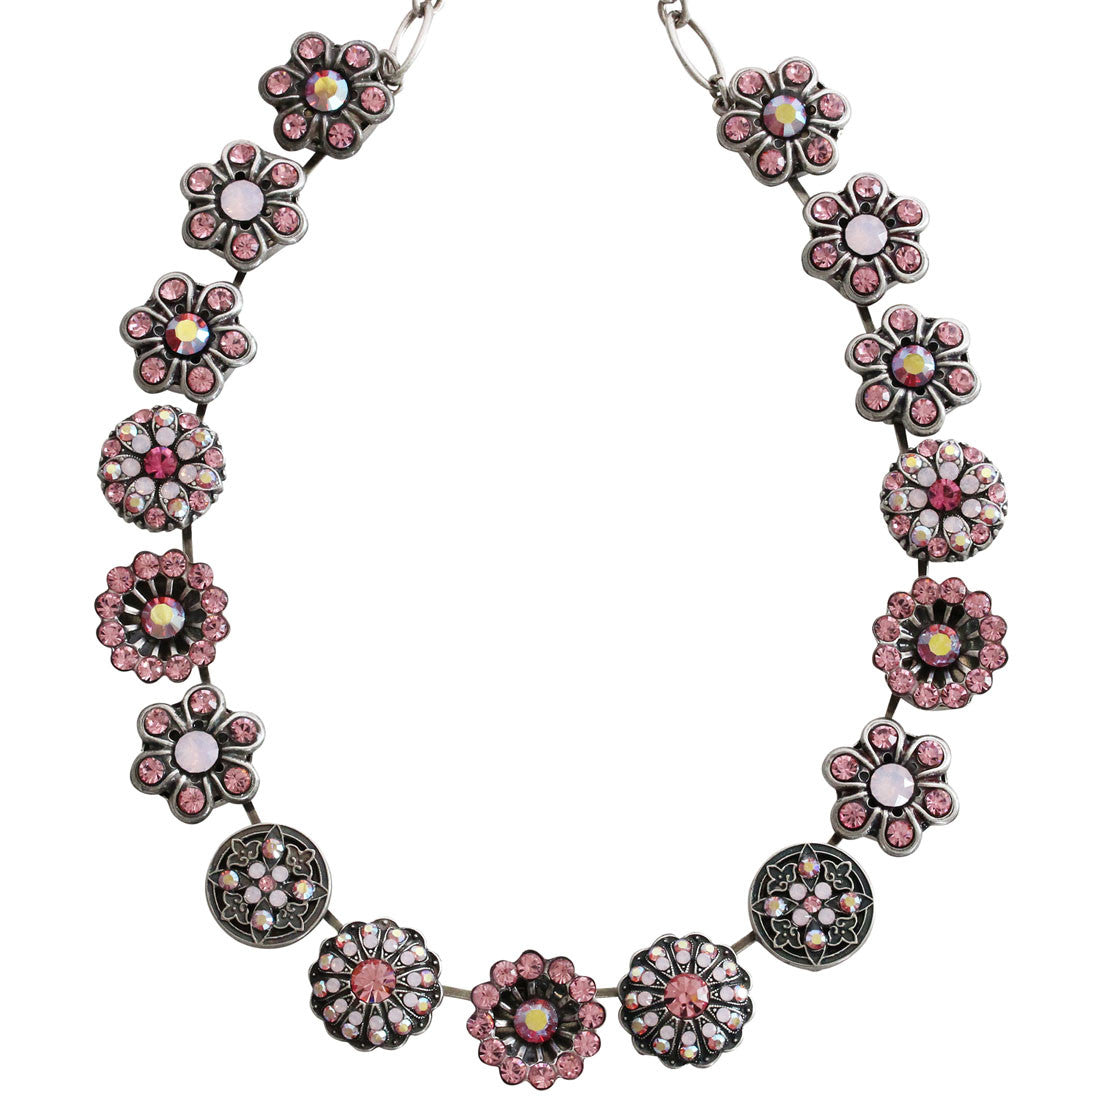 "Mariana Silver Plated Statement Flowers Swarovski Crystal Necklace, 17"" Pink AB 3138 2230"